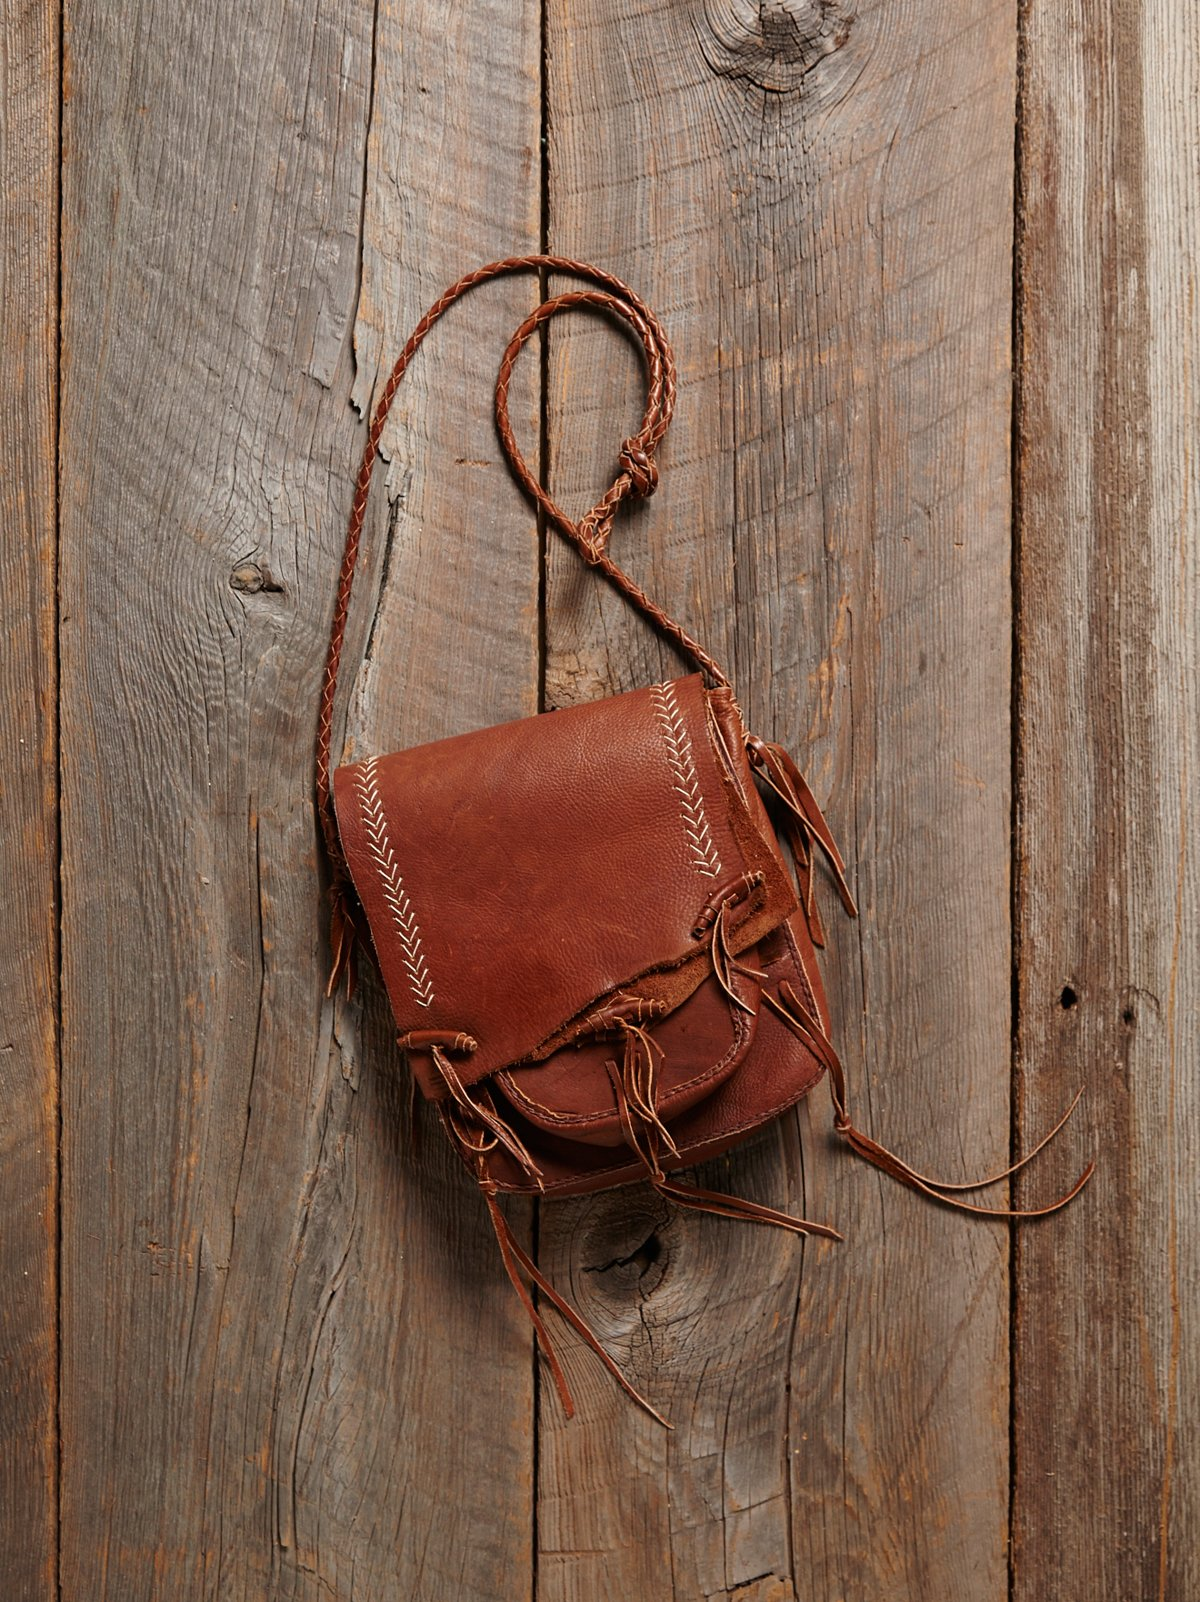 Vintage Hand Sewn Leather Bag